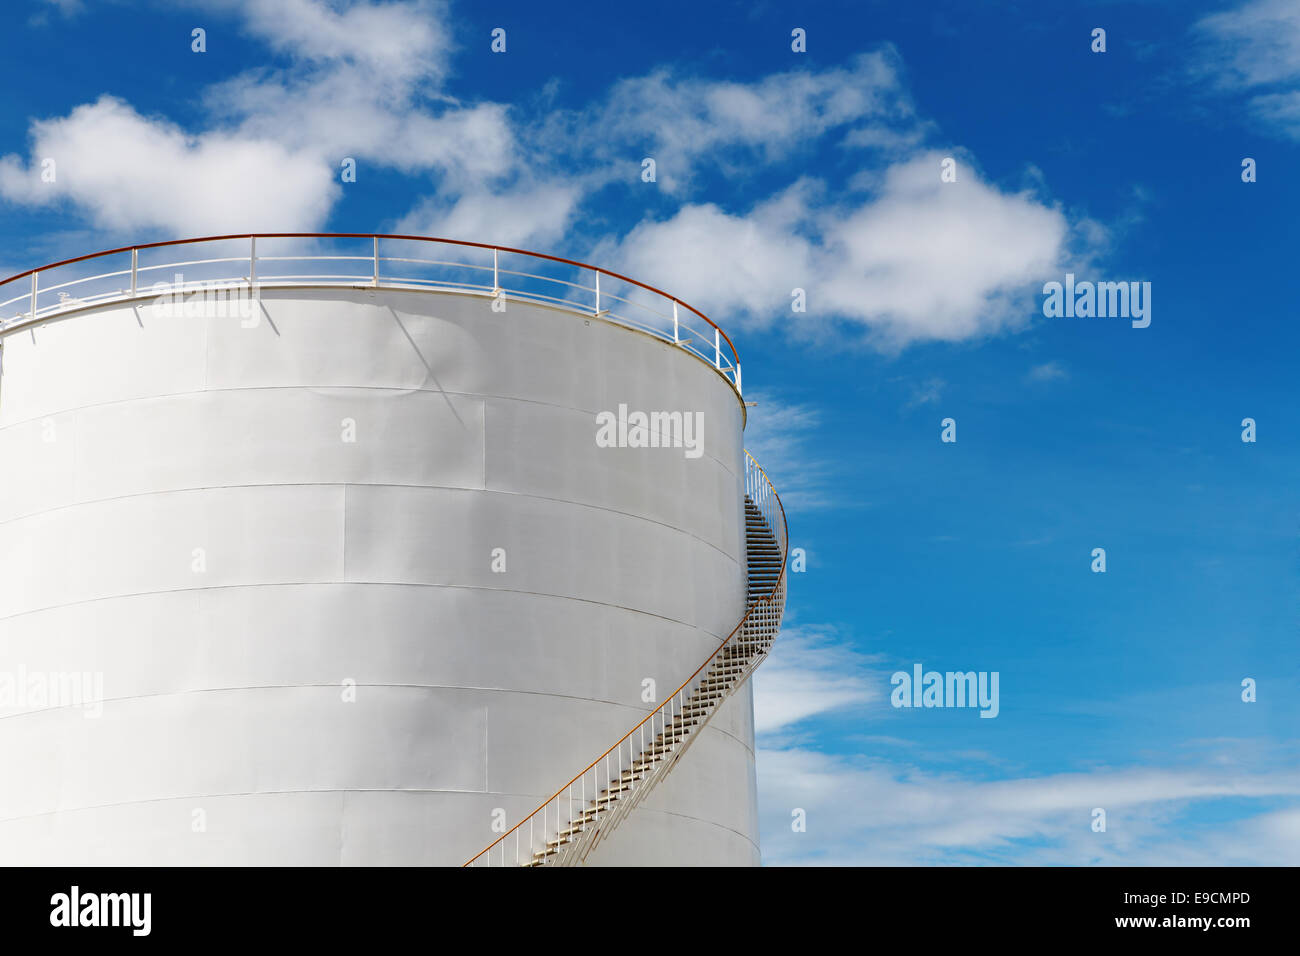 Industrial fuel tank against blue sky background - Stock Image